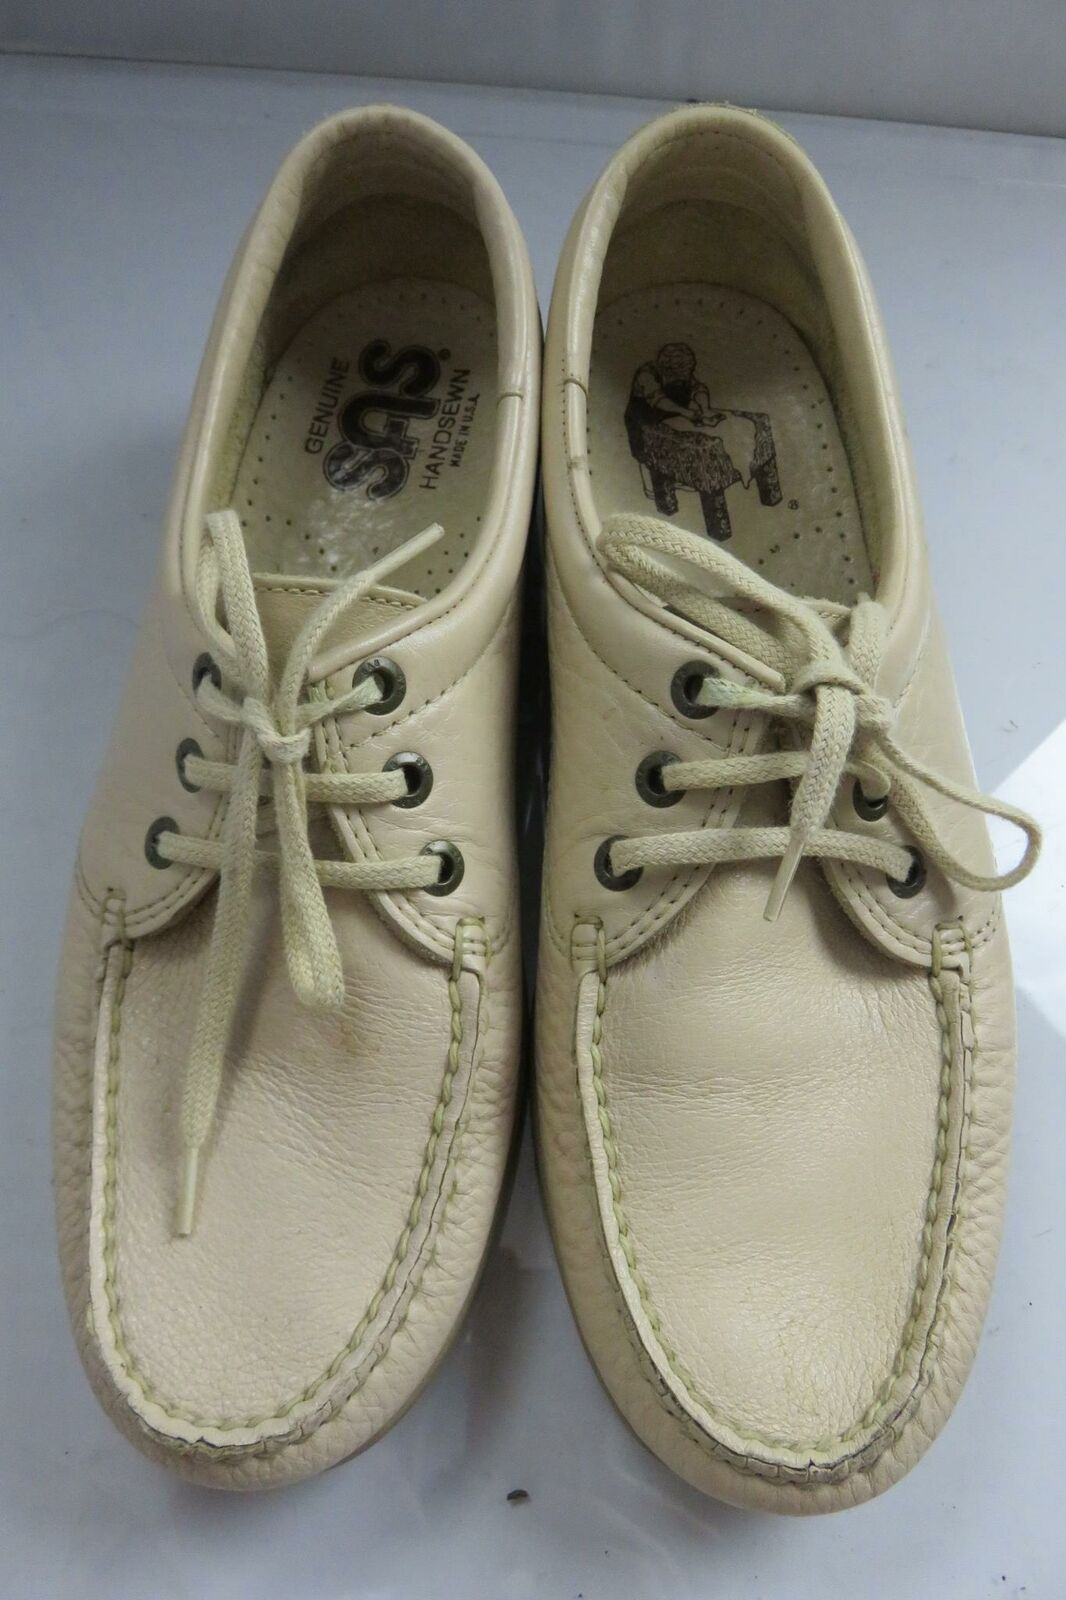 SAS Lace-Up Oxfords Mens Size 9N Beige Textured Leather Handsewn in USA